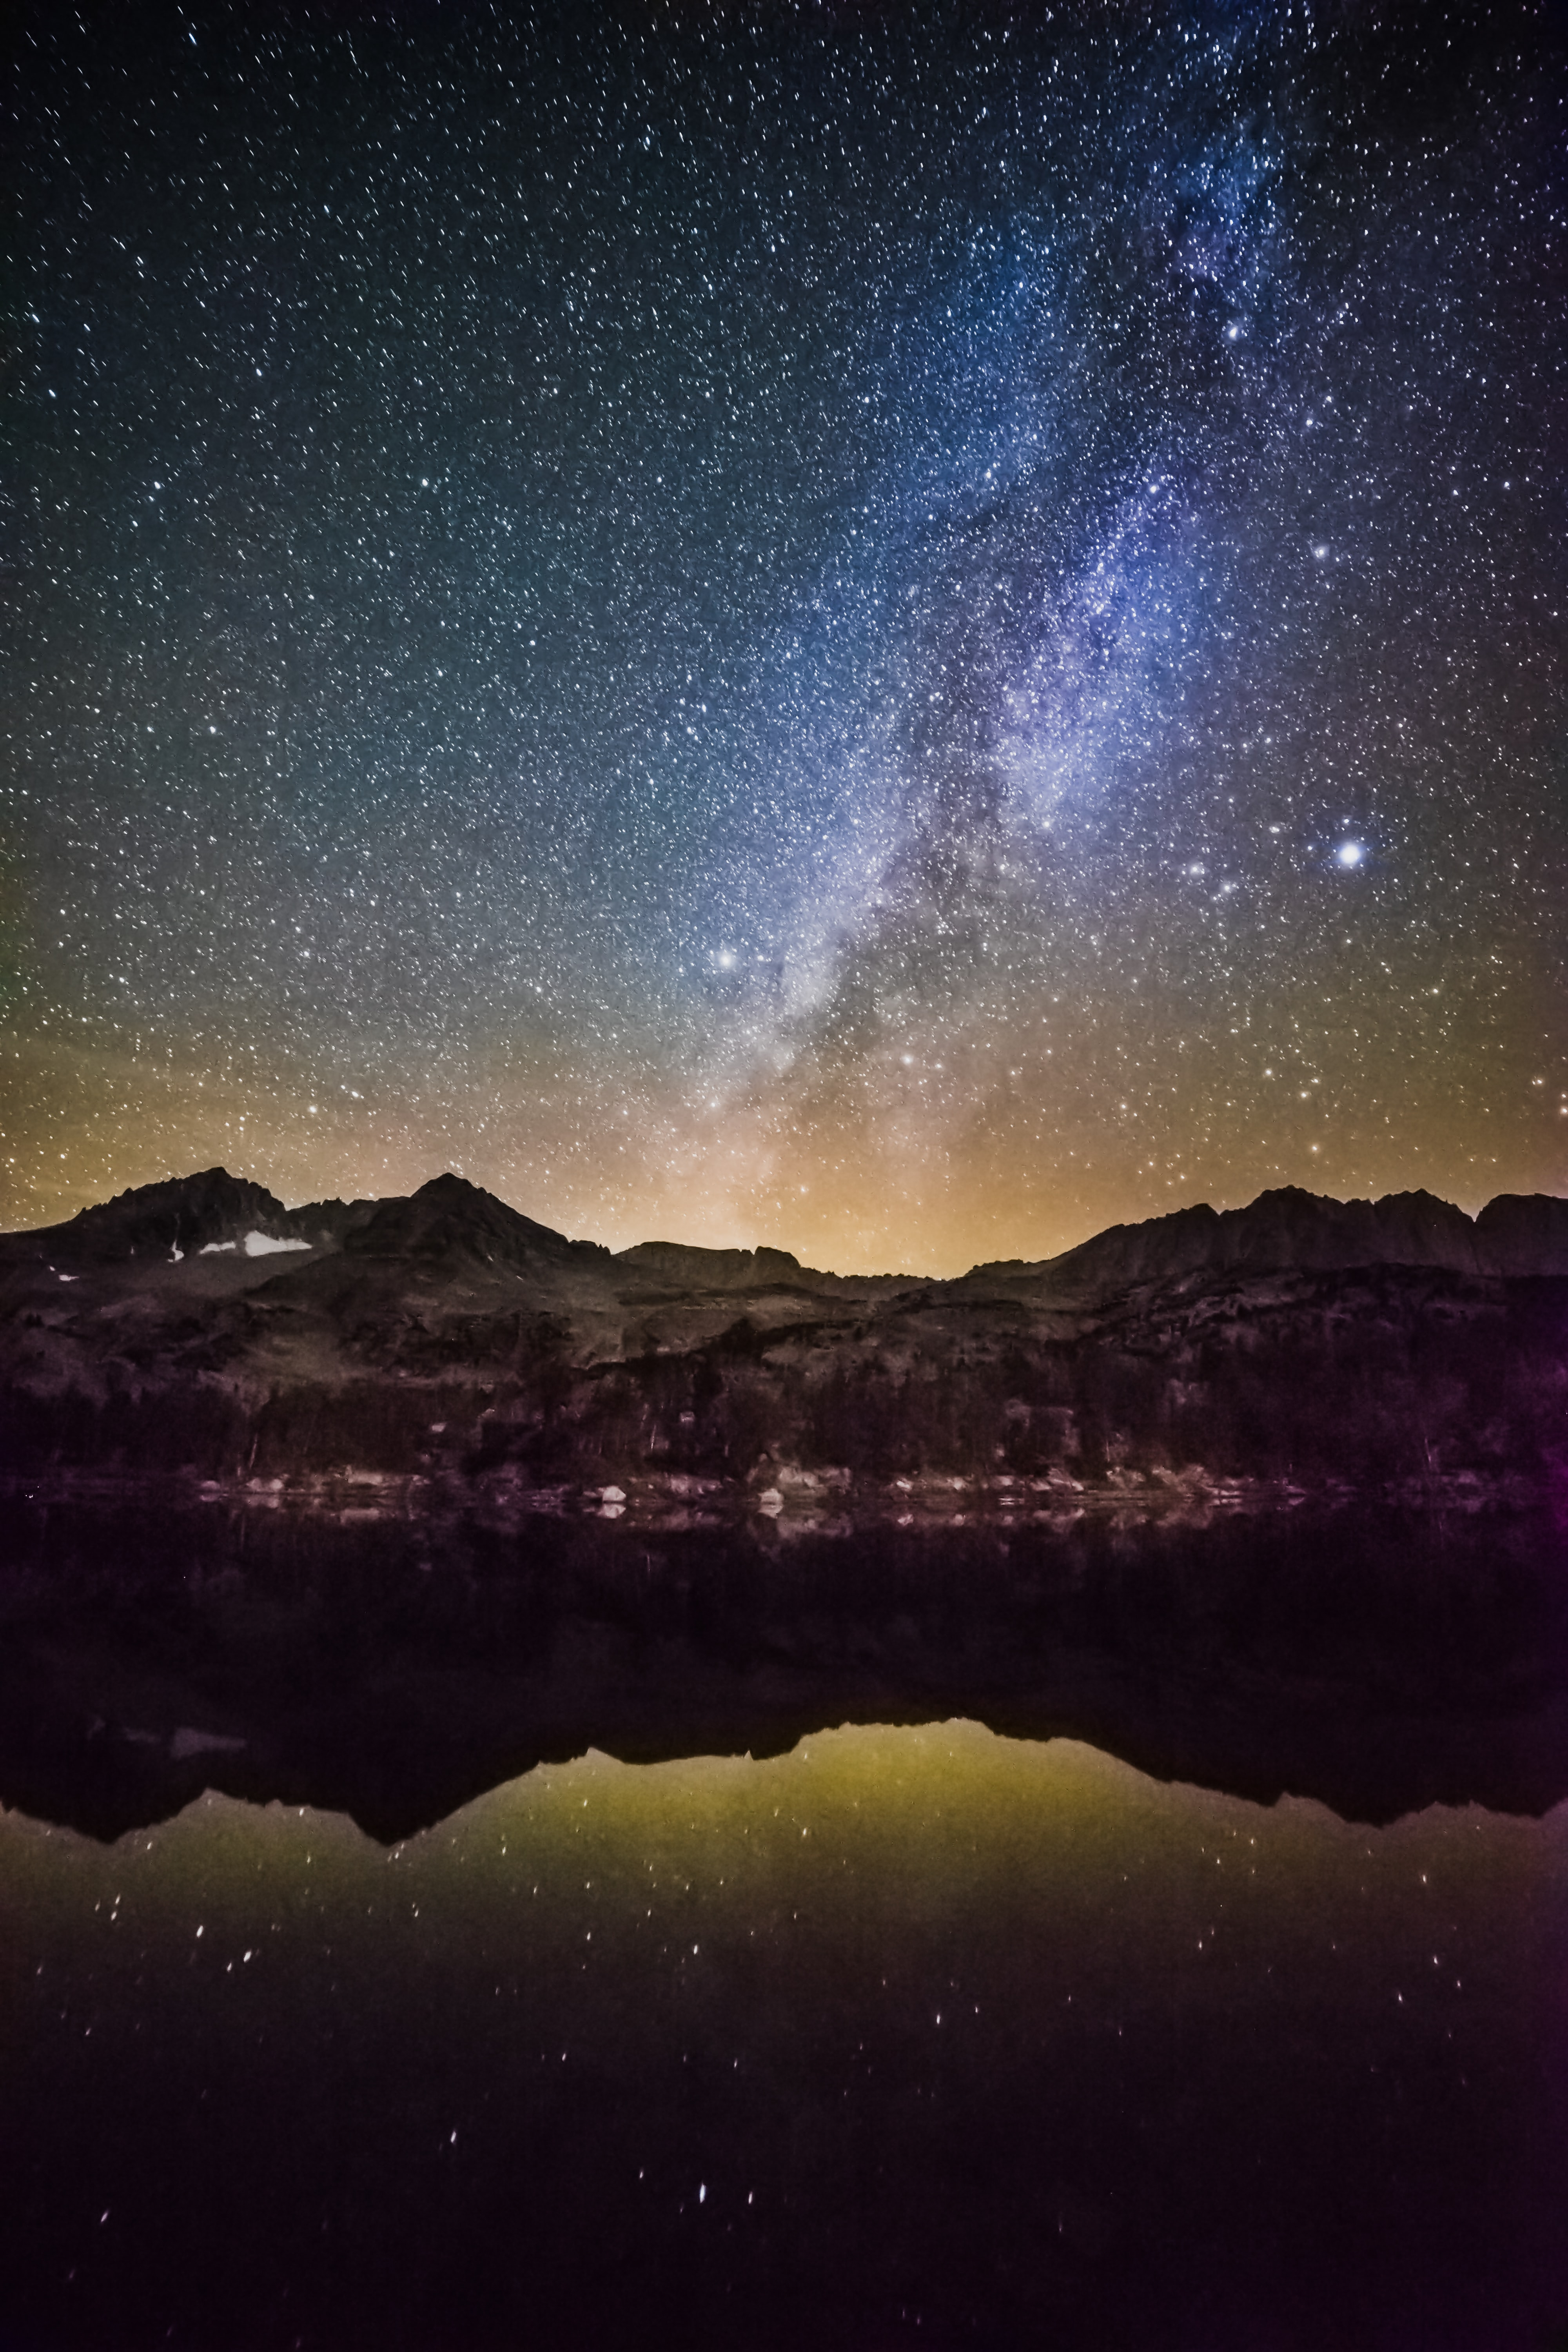 A starry sky with blue clouds above mountains and a lake.